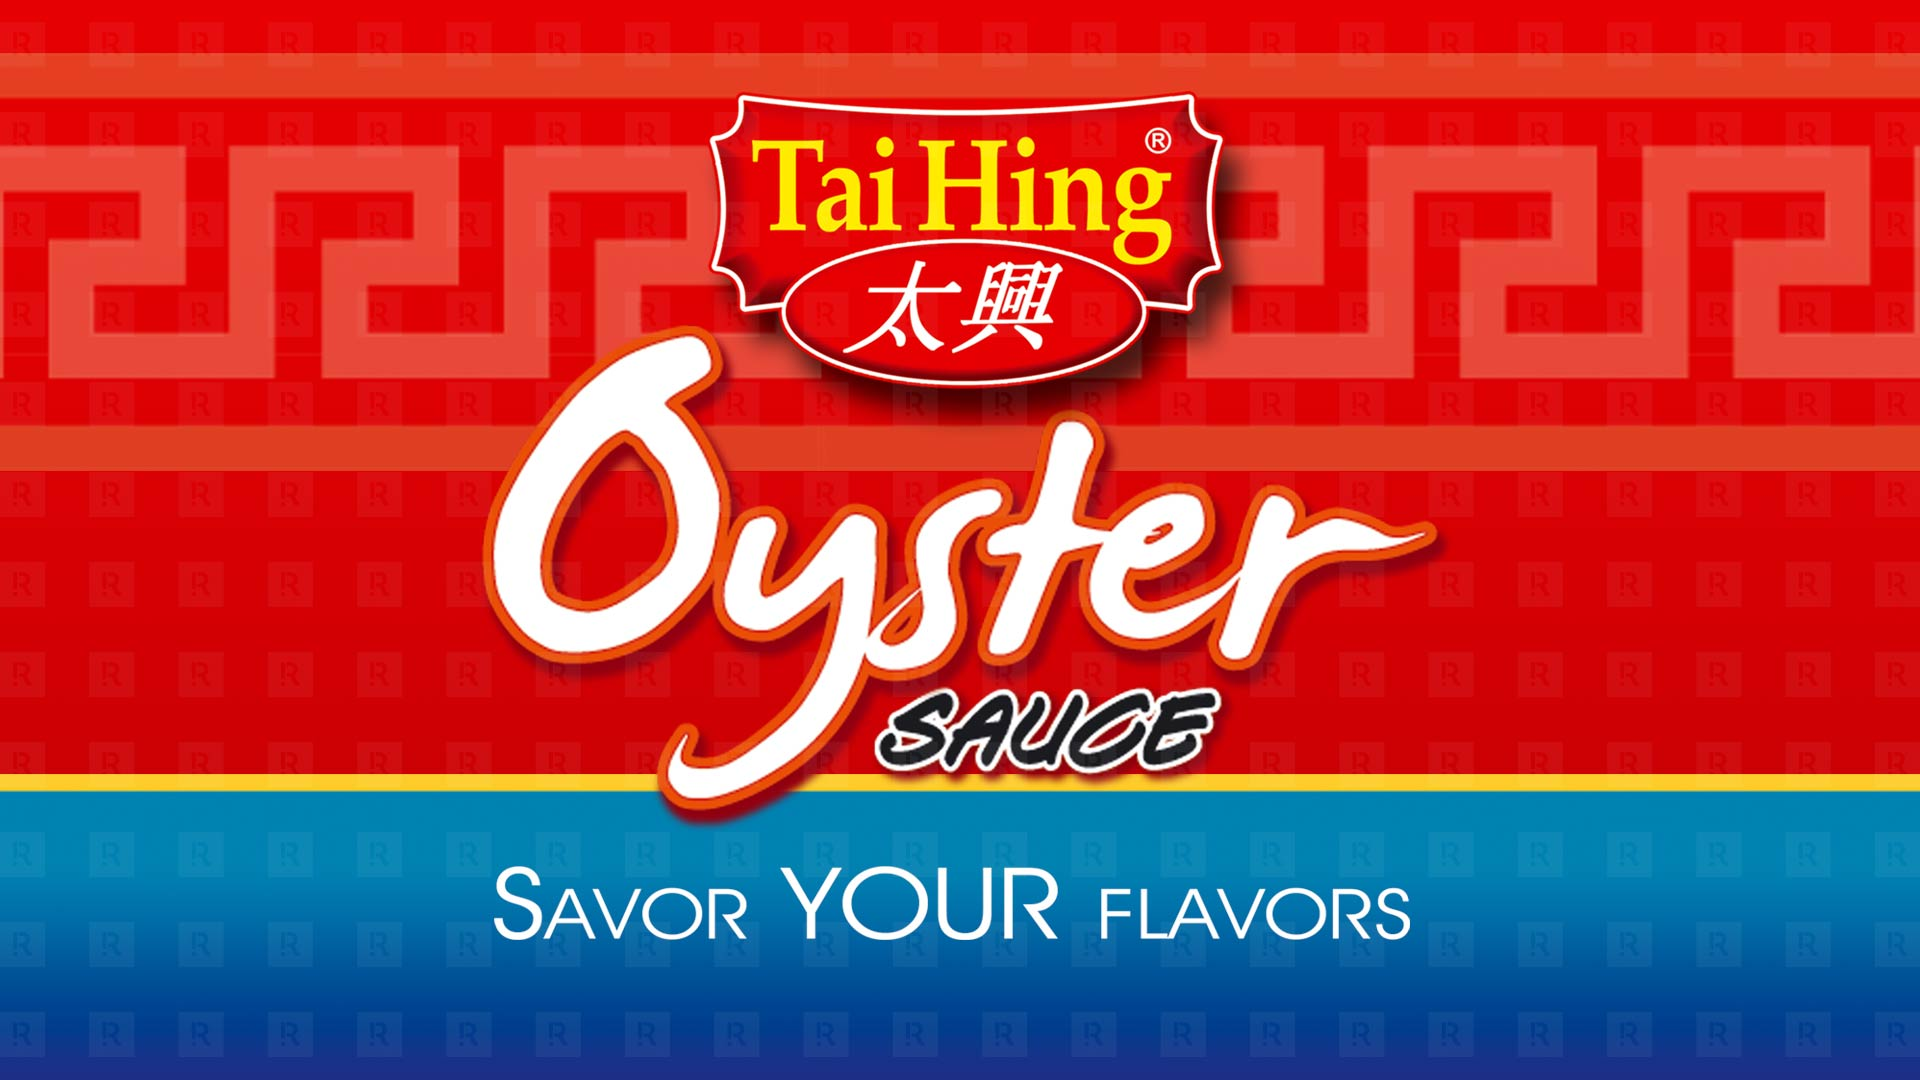 Tai Hing Oyster Sauce Brand Design